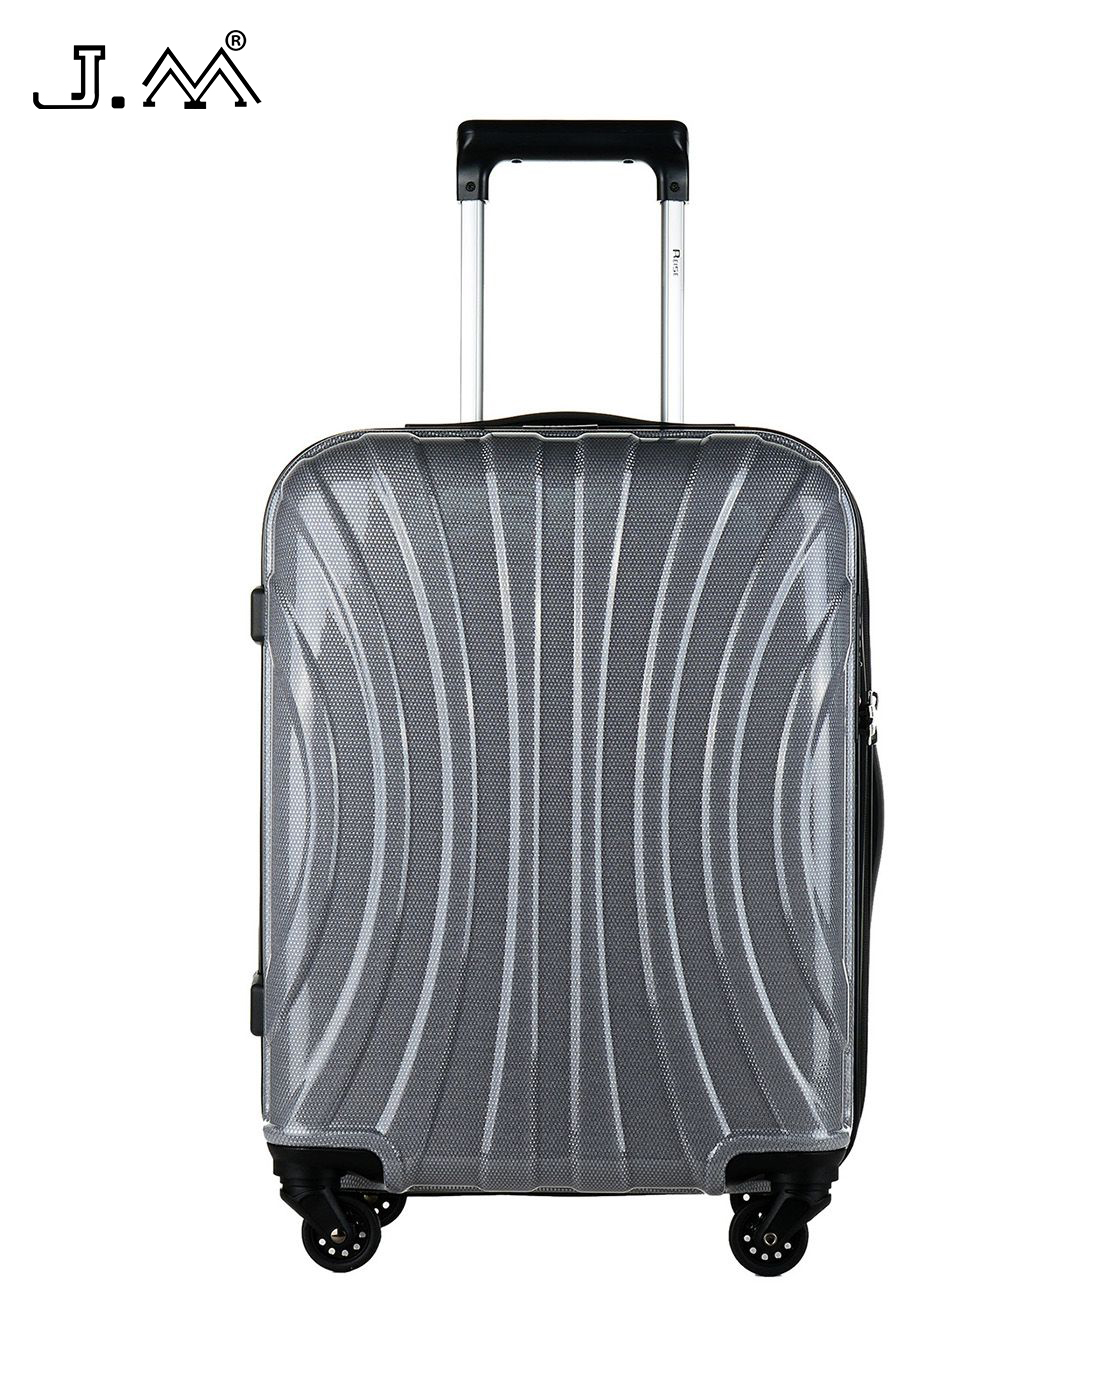 Compare Prices on Spinner Hardside Luggage- Online Shopping/Buy ...